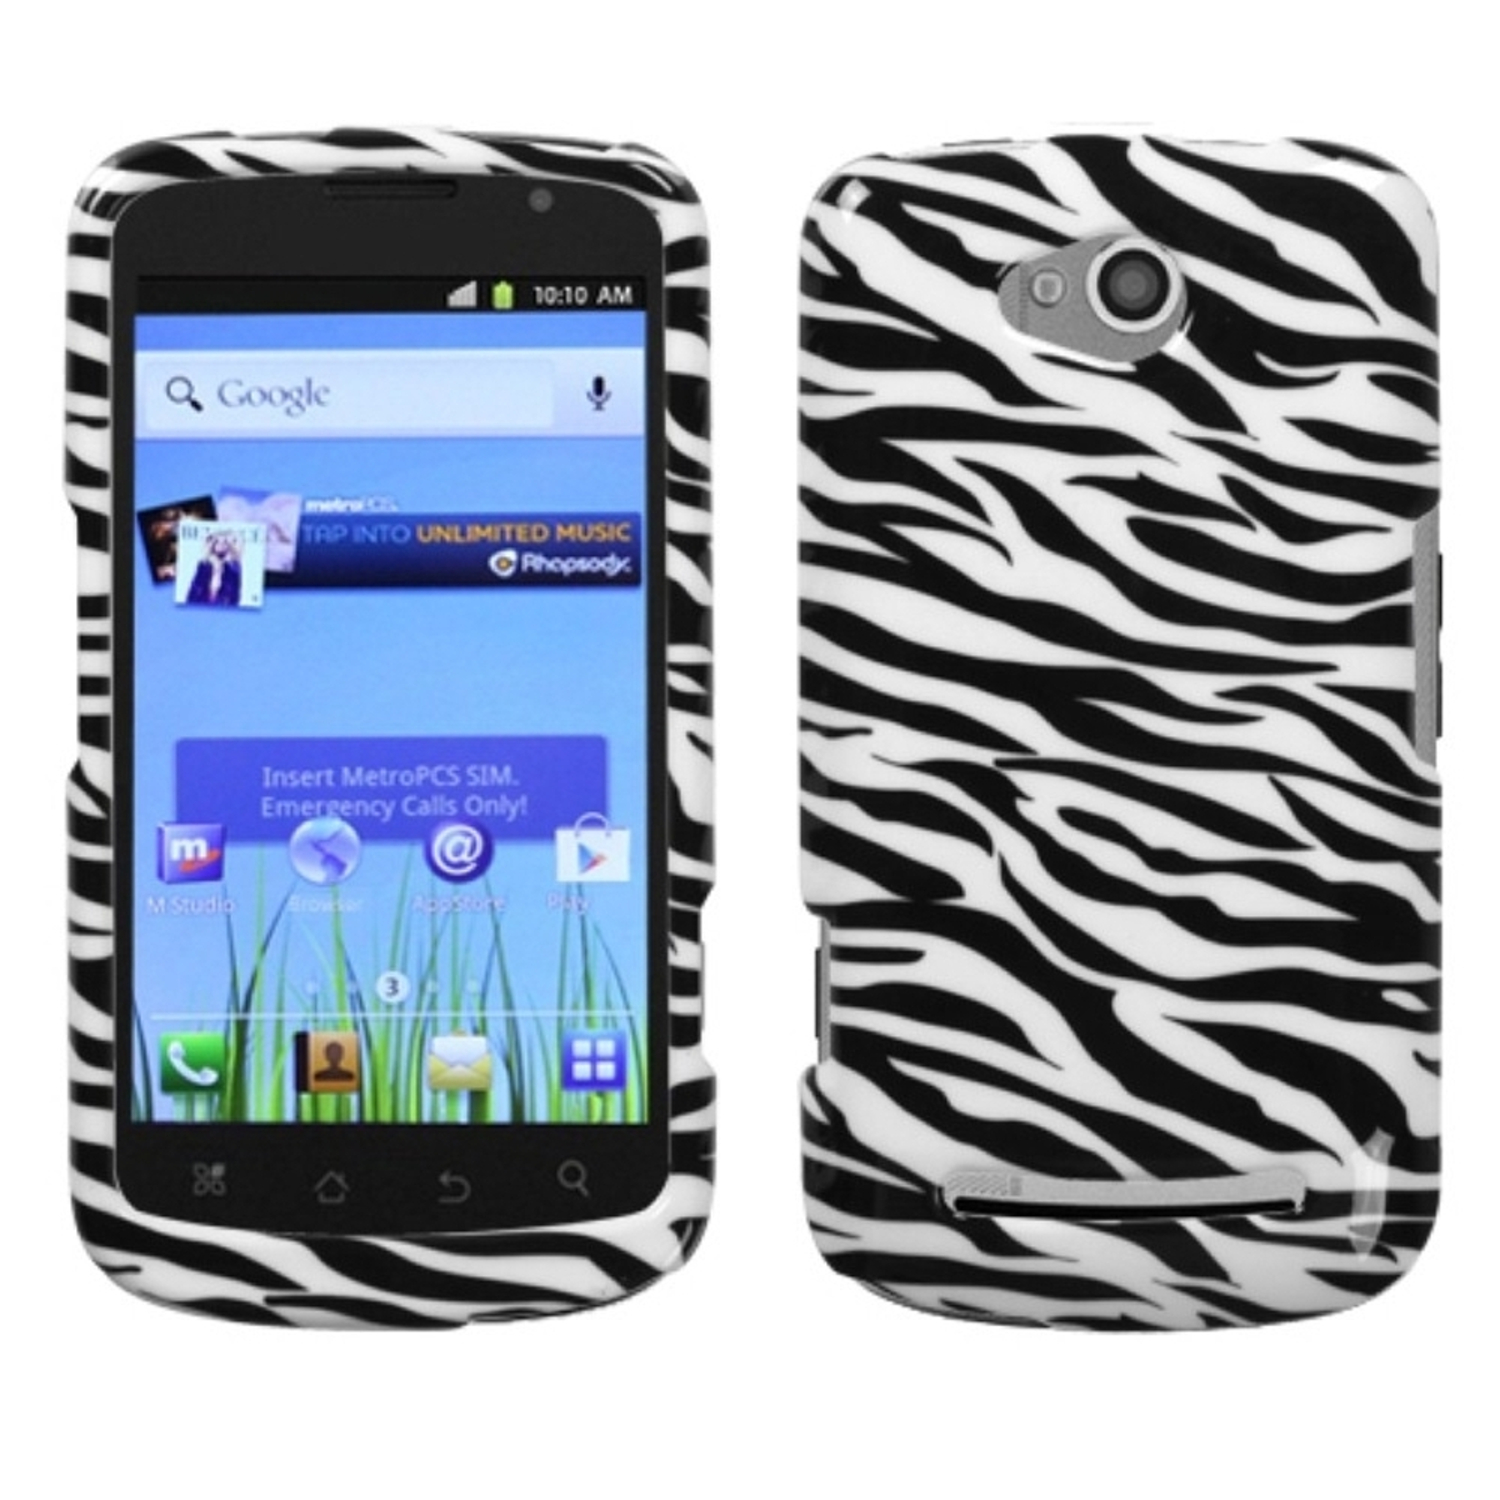 Insten Zebra Skin Phone Case for COOLPAD: 5860E (Quattro 4G)